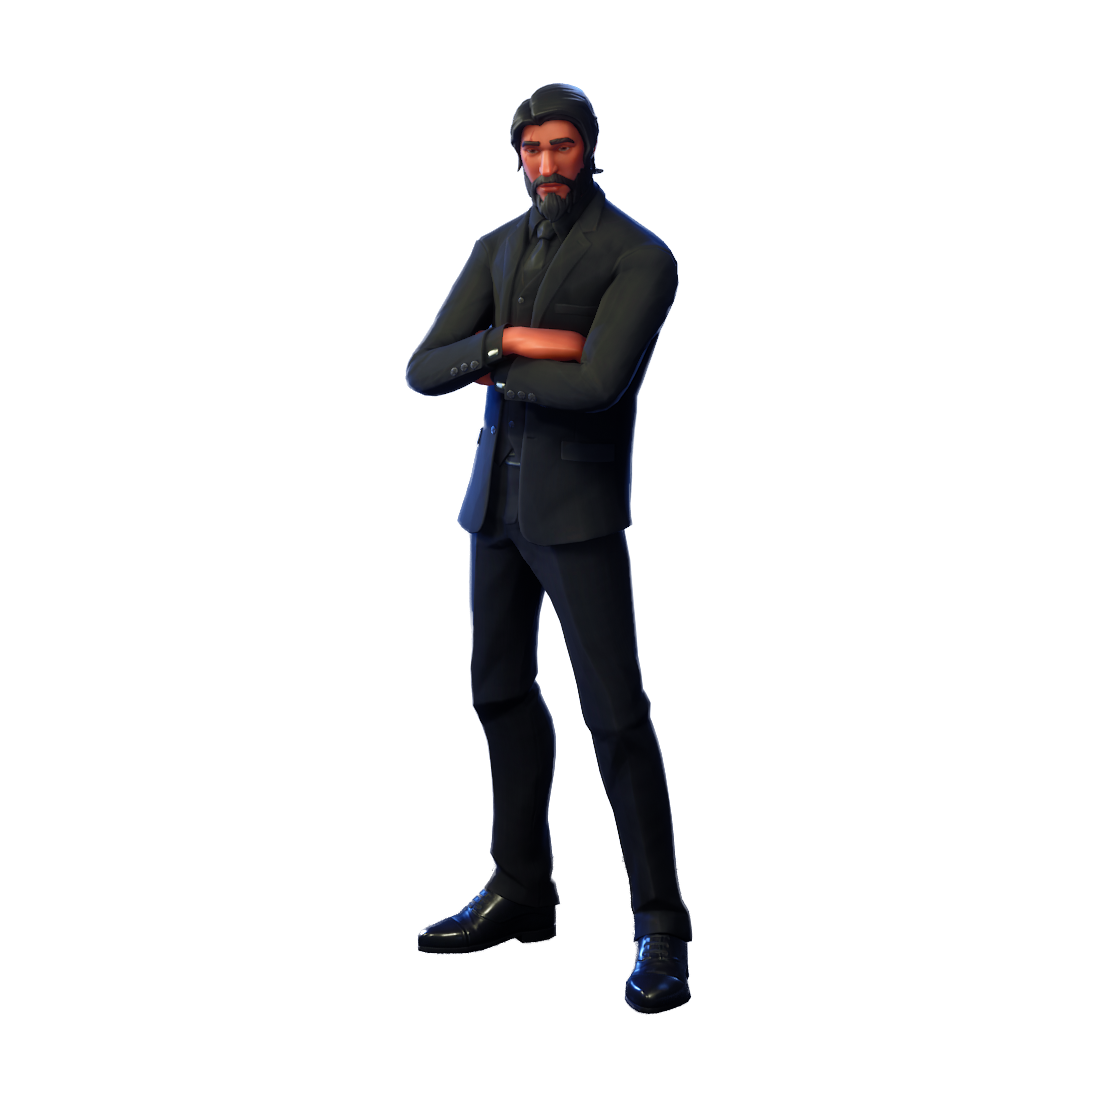 Fortnite The Reaper Png Image Purepng Free Transparent Cc Png Image Library